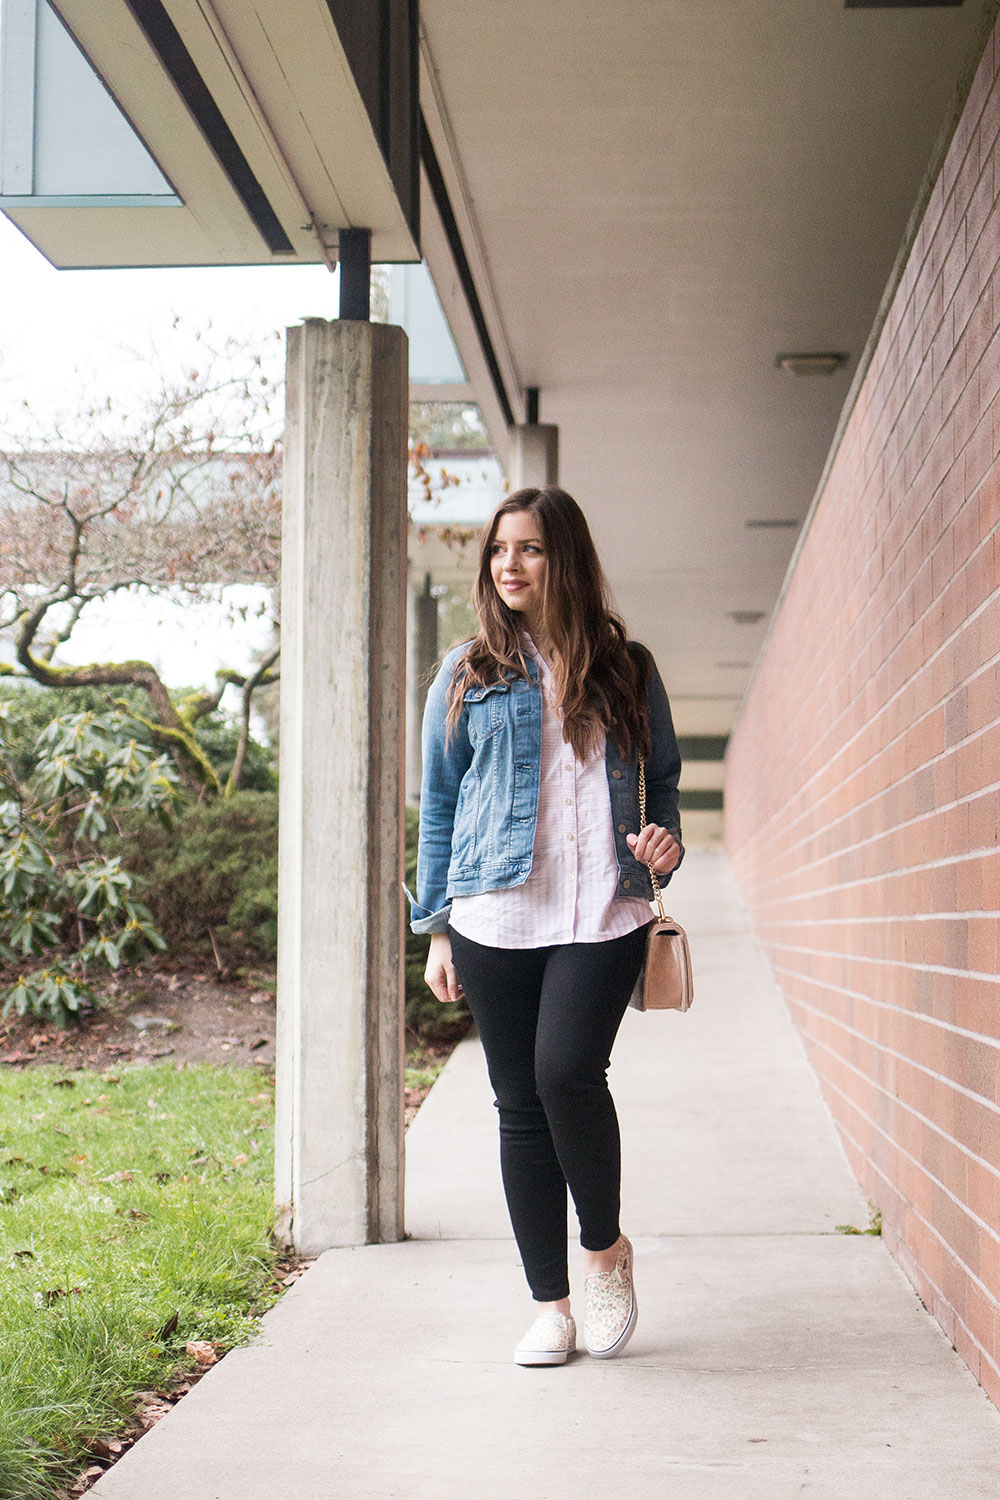 What to Wear in Spring Transitional Weather // Hello Rigby Seattle Fashion Blog